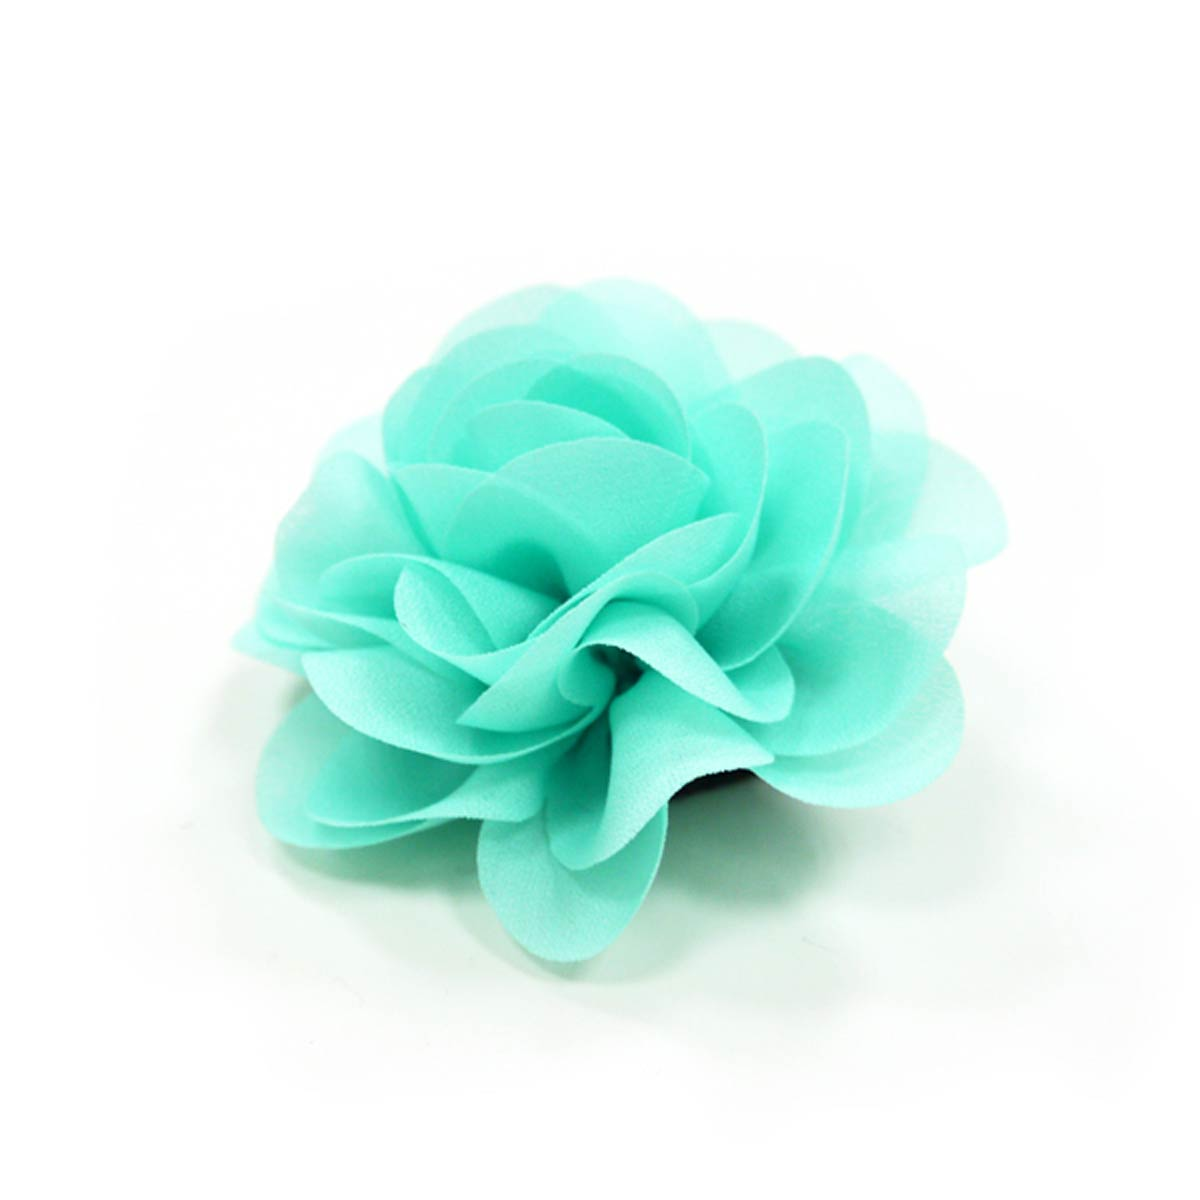 EasyBOW Flower Dog Collar Attachment by Dogo - Mint